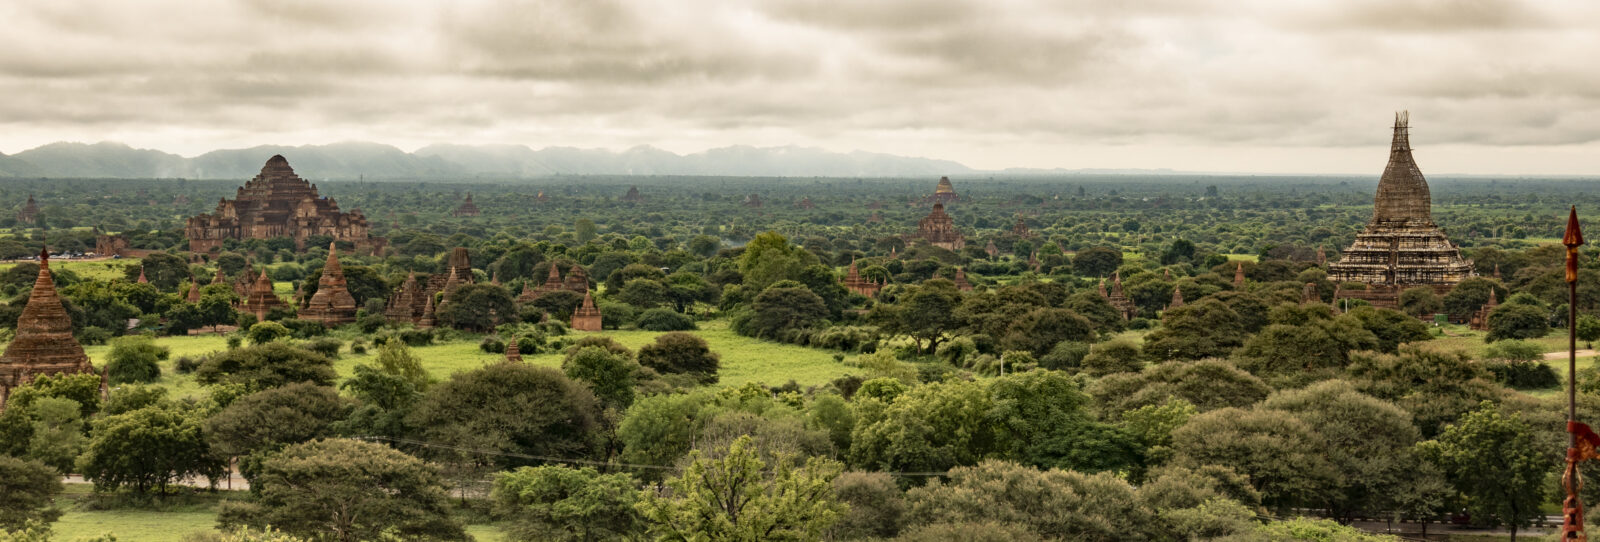 View of Bagan archaeological site, Myanmar. Courtesy of the J. Paul Getty Trust